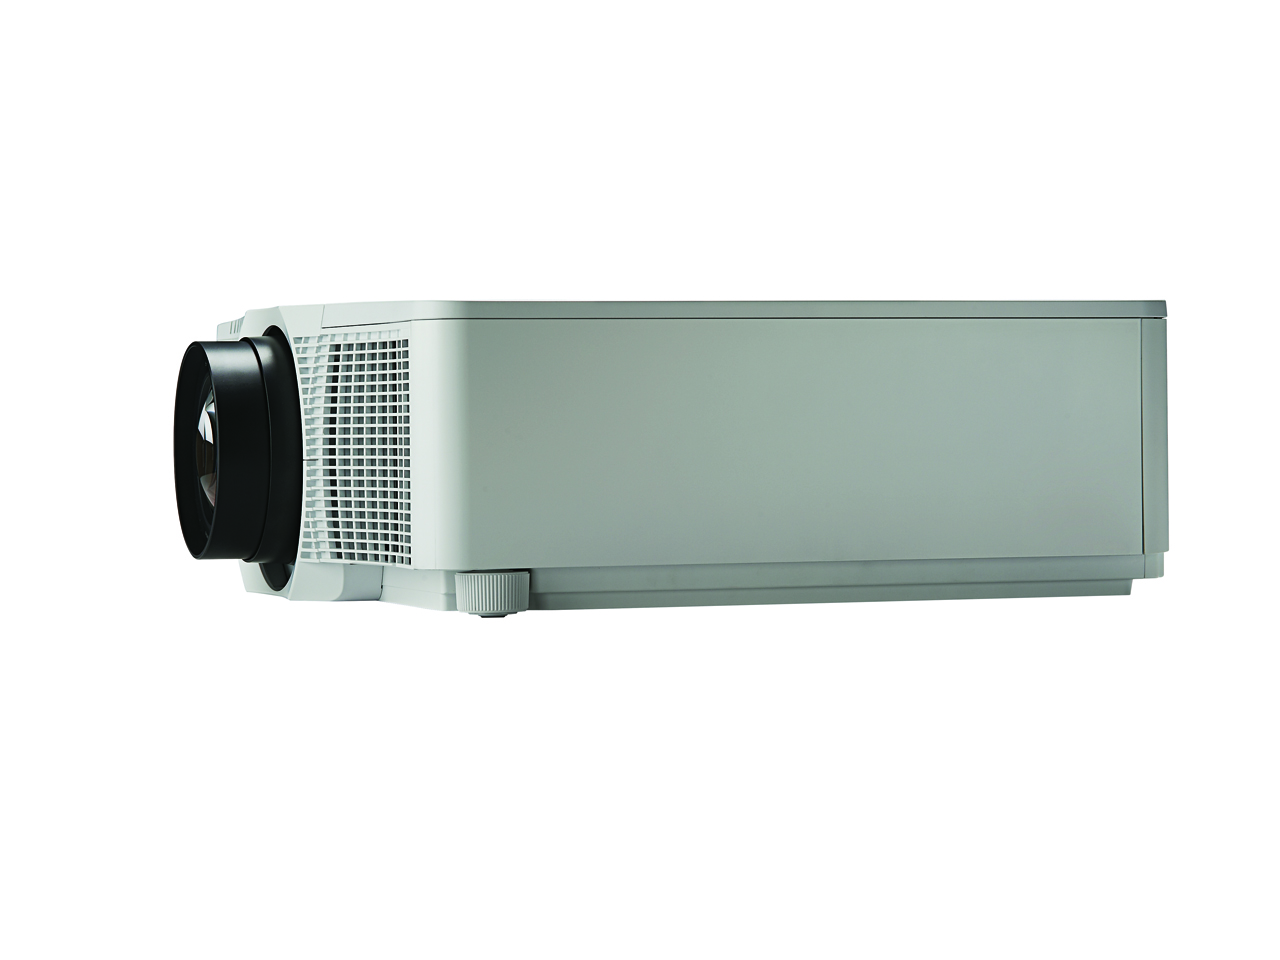 Christie DWU851-Q 1DLP projector | 121-029102-01 (white) | 121-029113-01 (black)